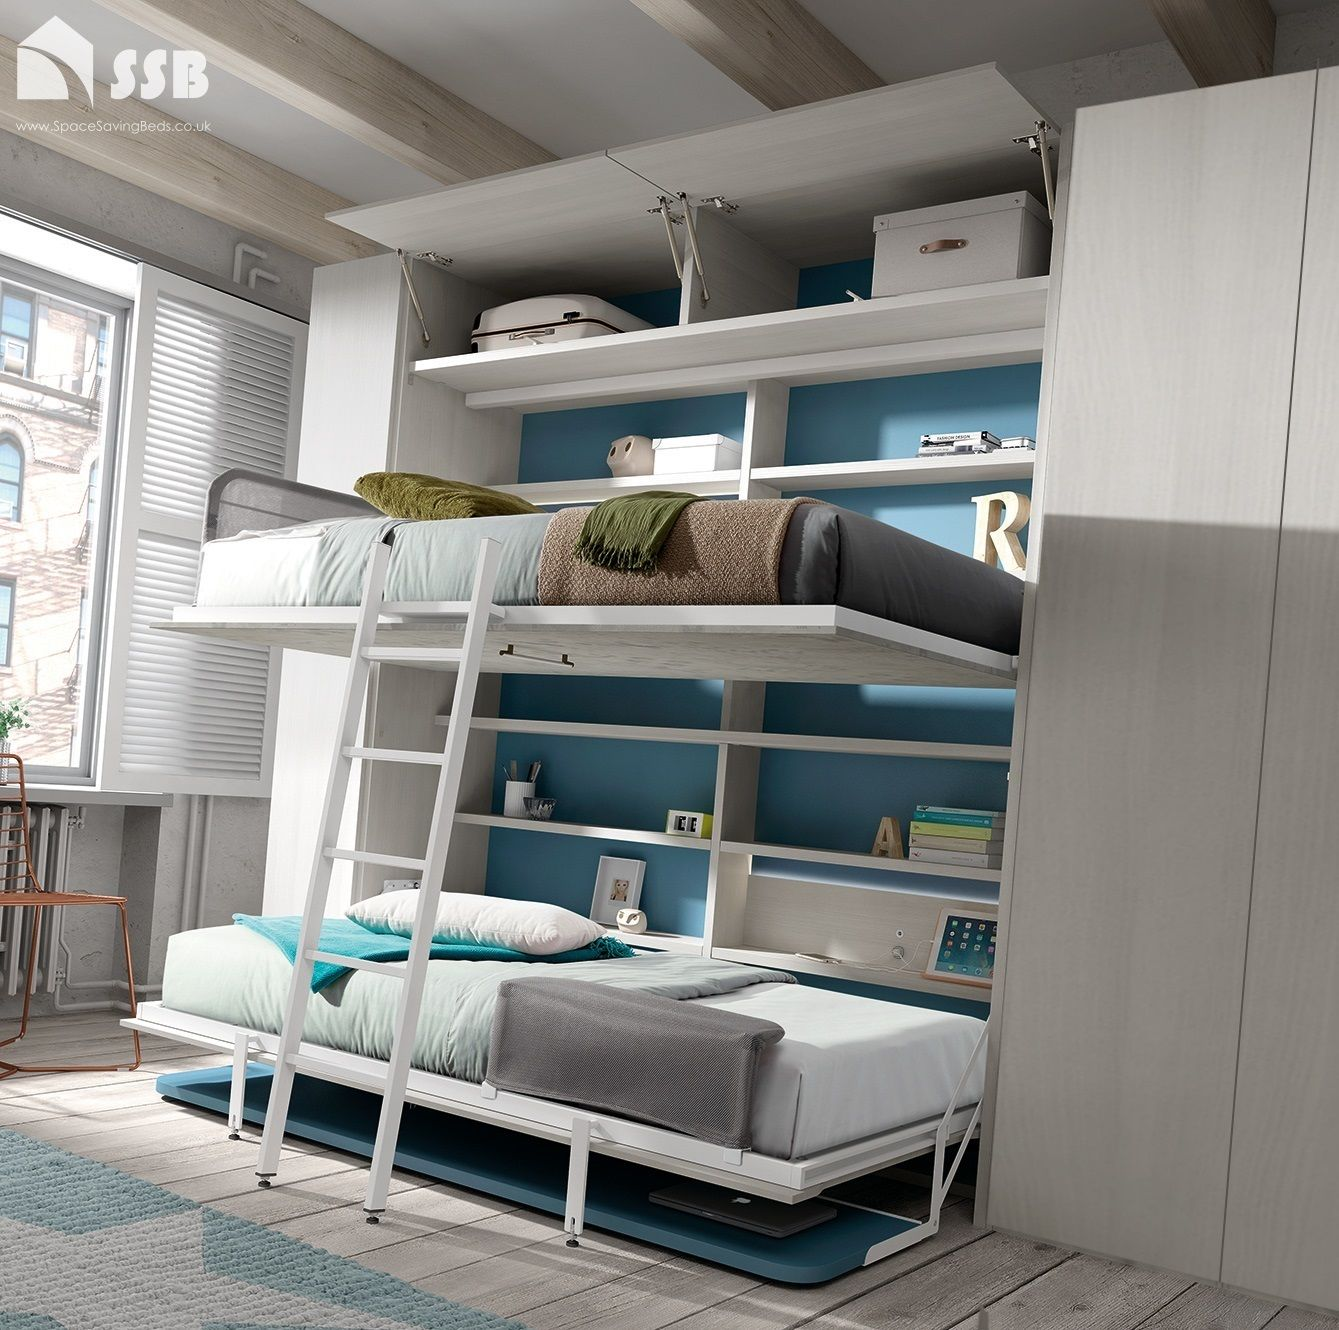 www.spacesavingbeds.co.uk user cimage SPACE-SAVING-BEDS ...